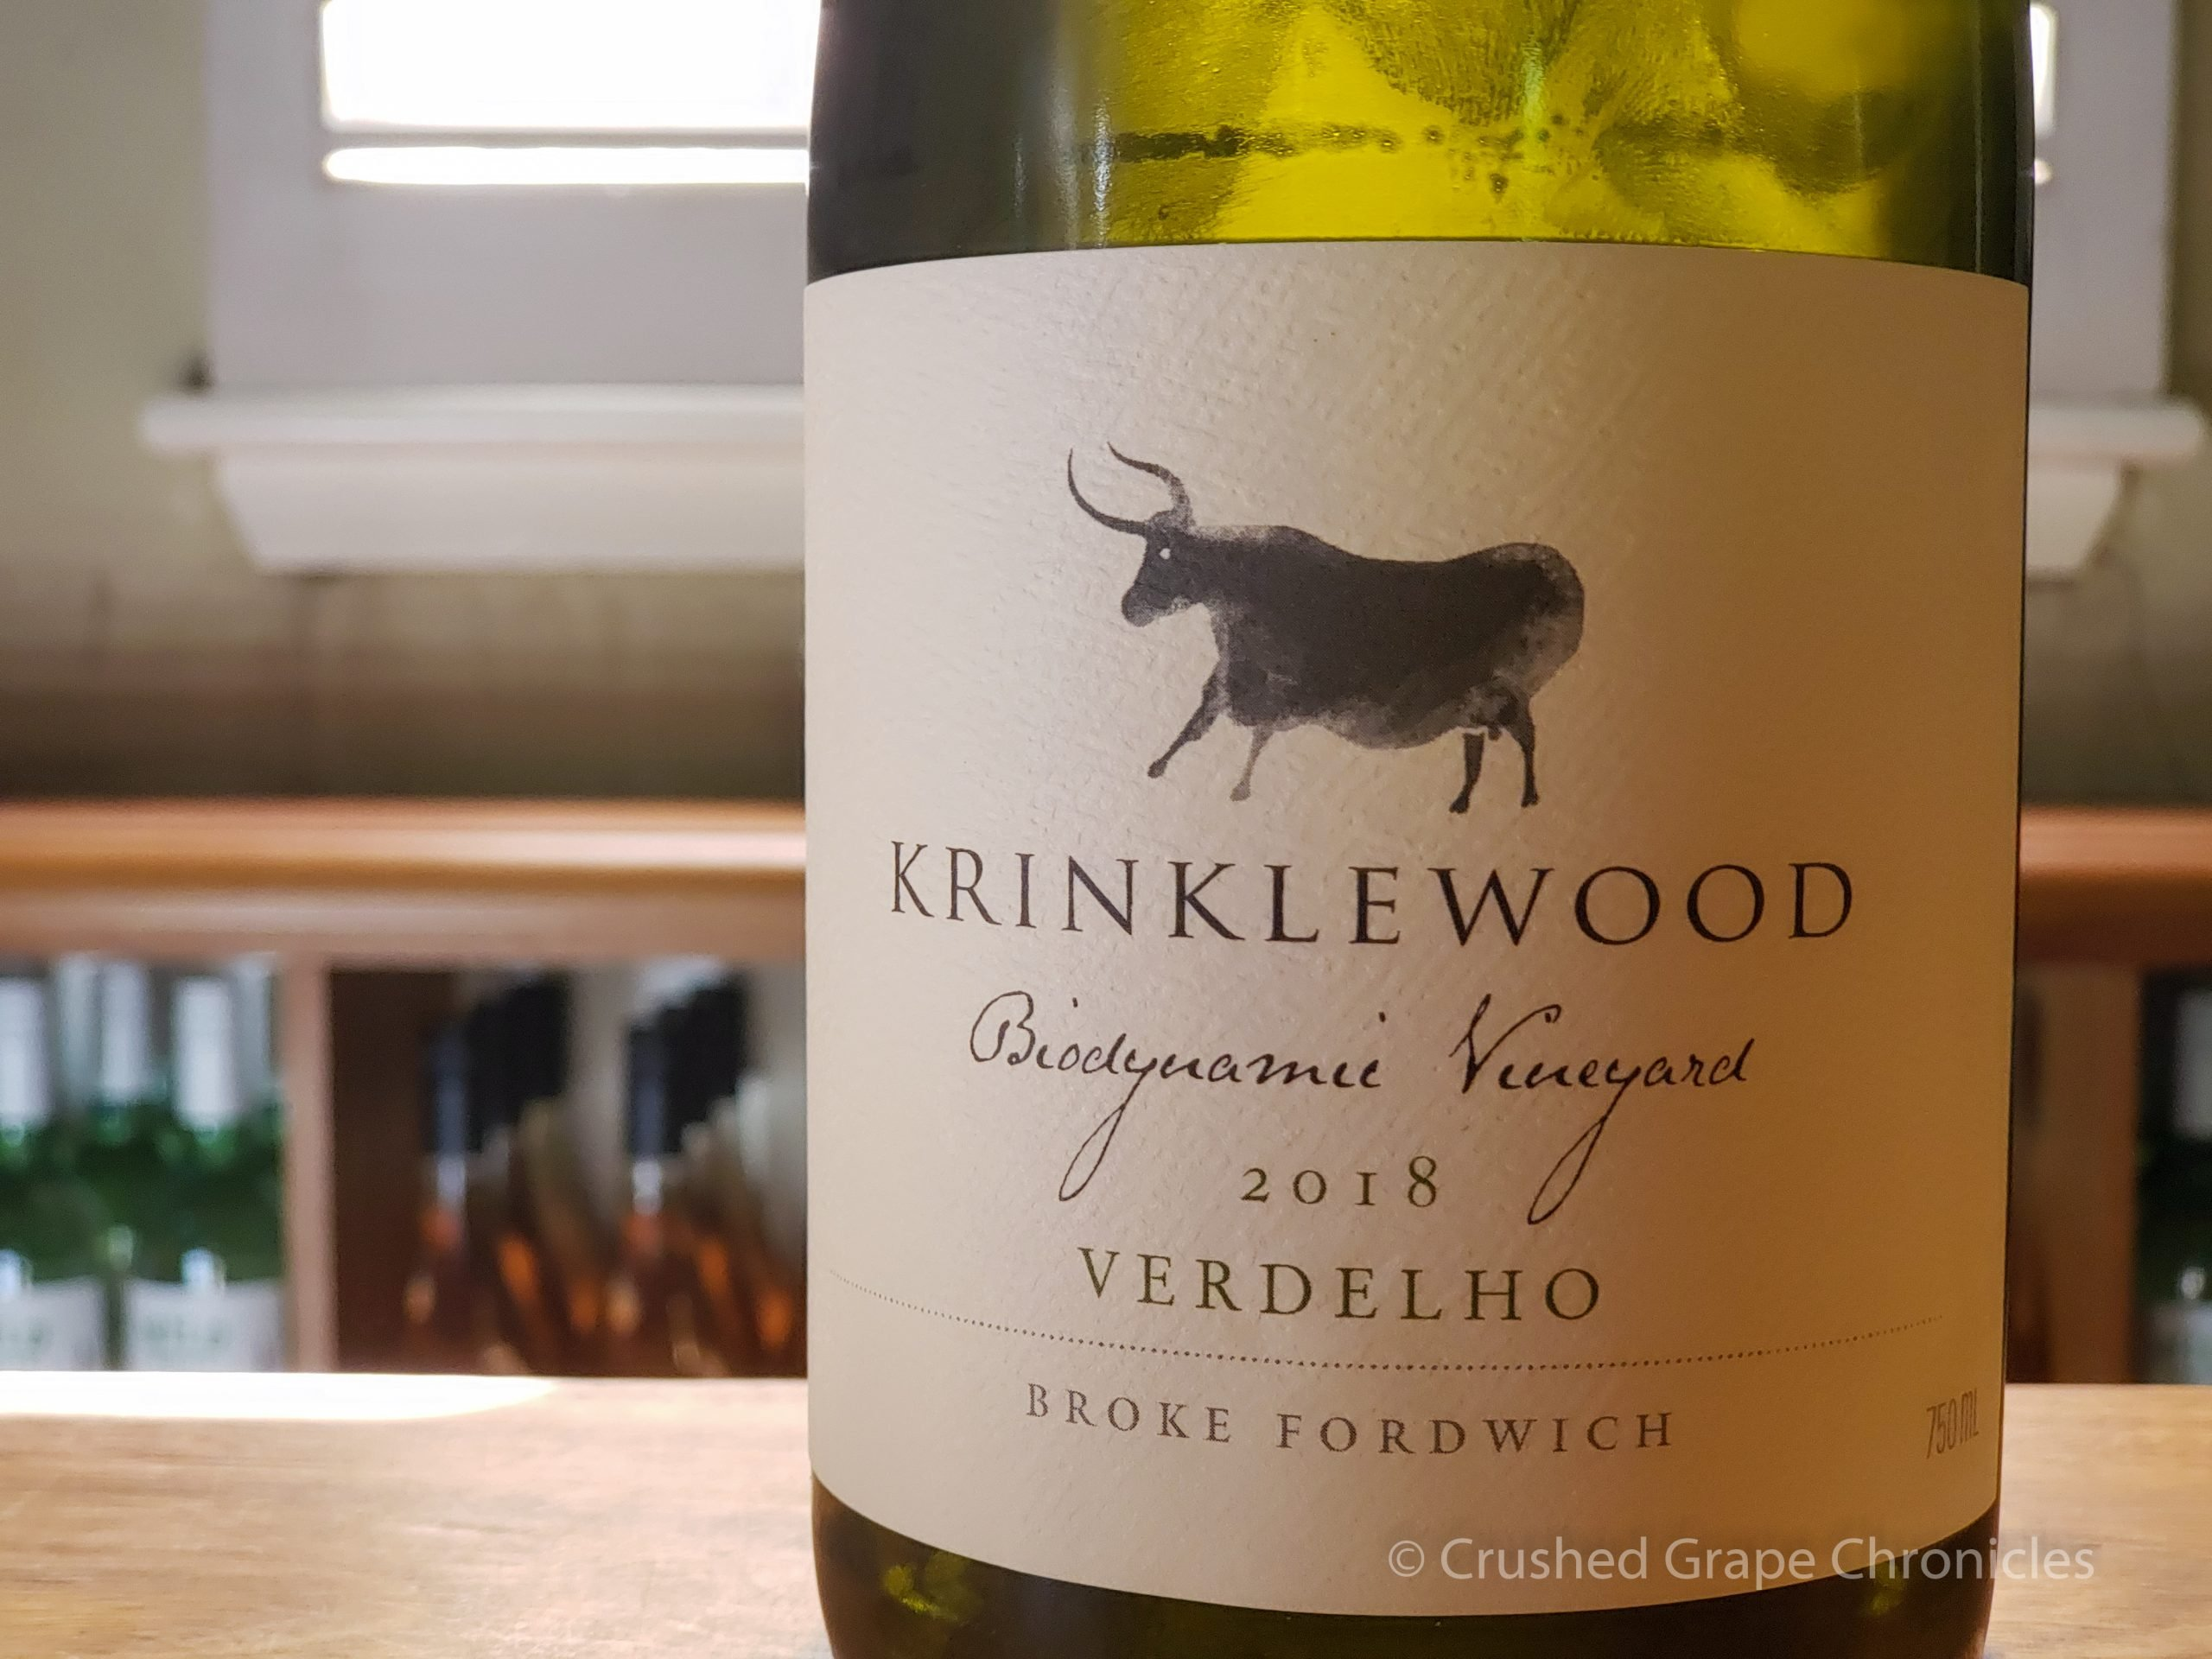 Krinklewood in Hunter Valley Australia 2018 Biodynamic Verdelho Broke Fordwich